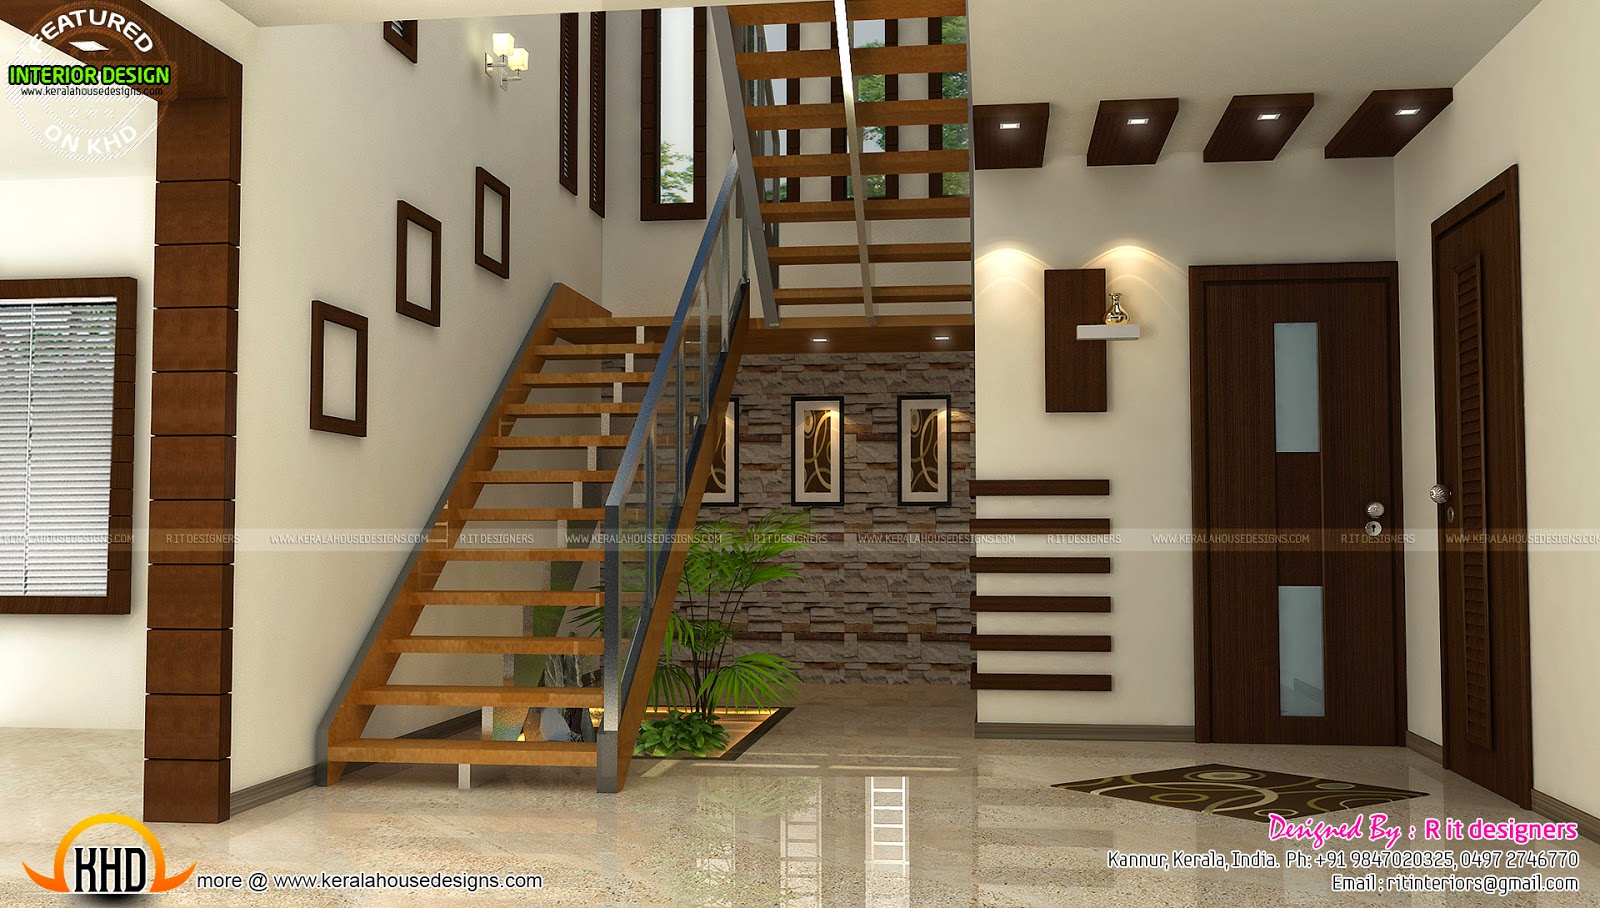 Staircase, bedroom, dining interiors - Kerala home design ...